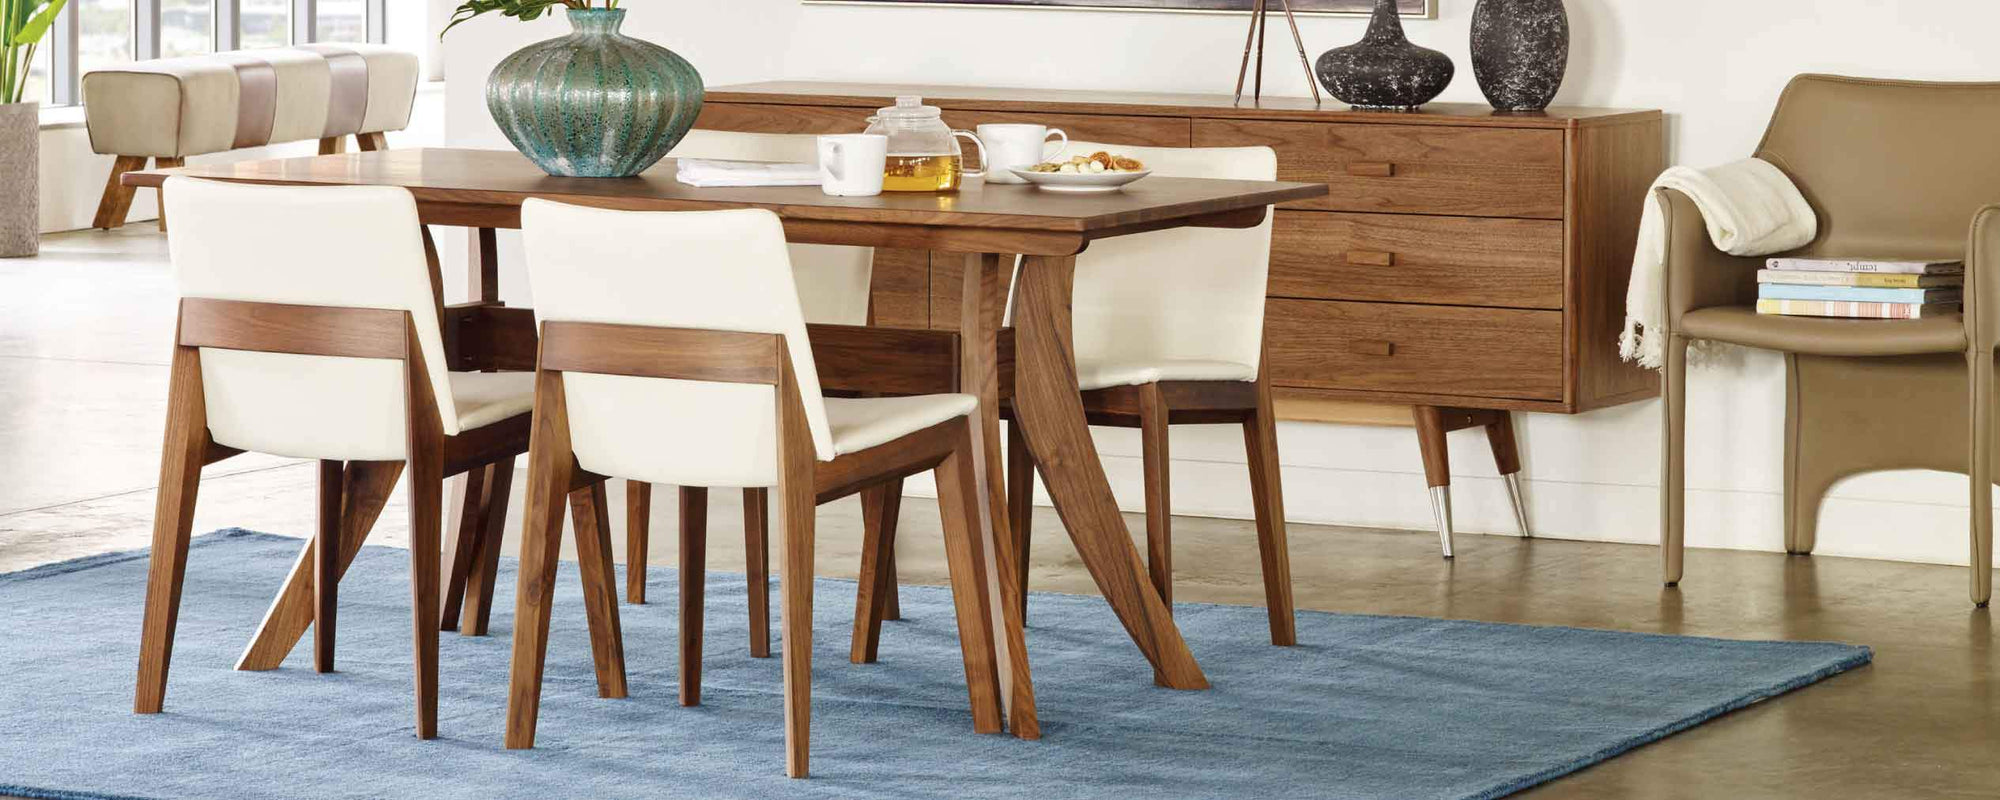 Mid Century Modern Dining Room Furniture Froy Com